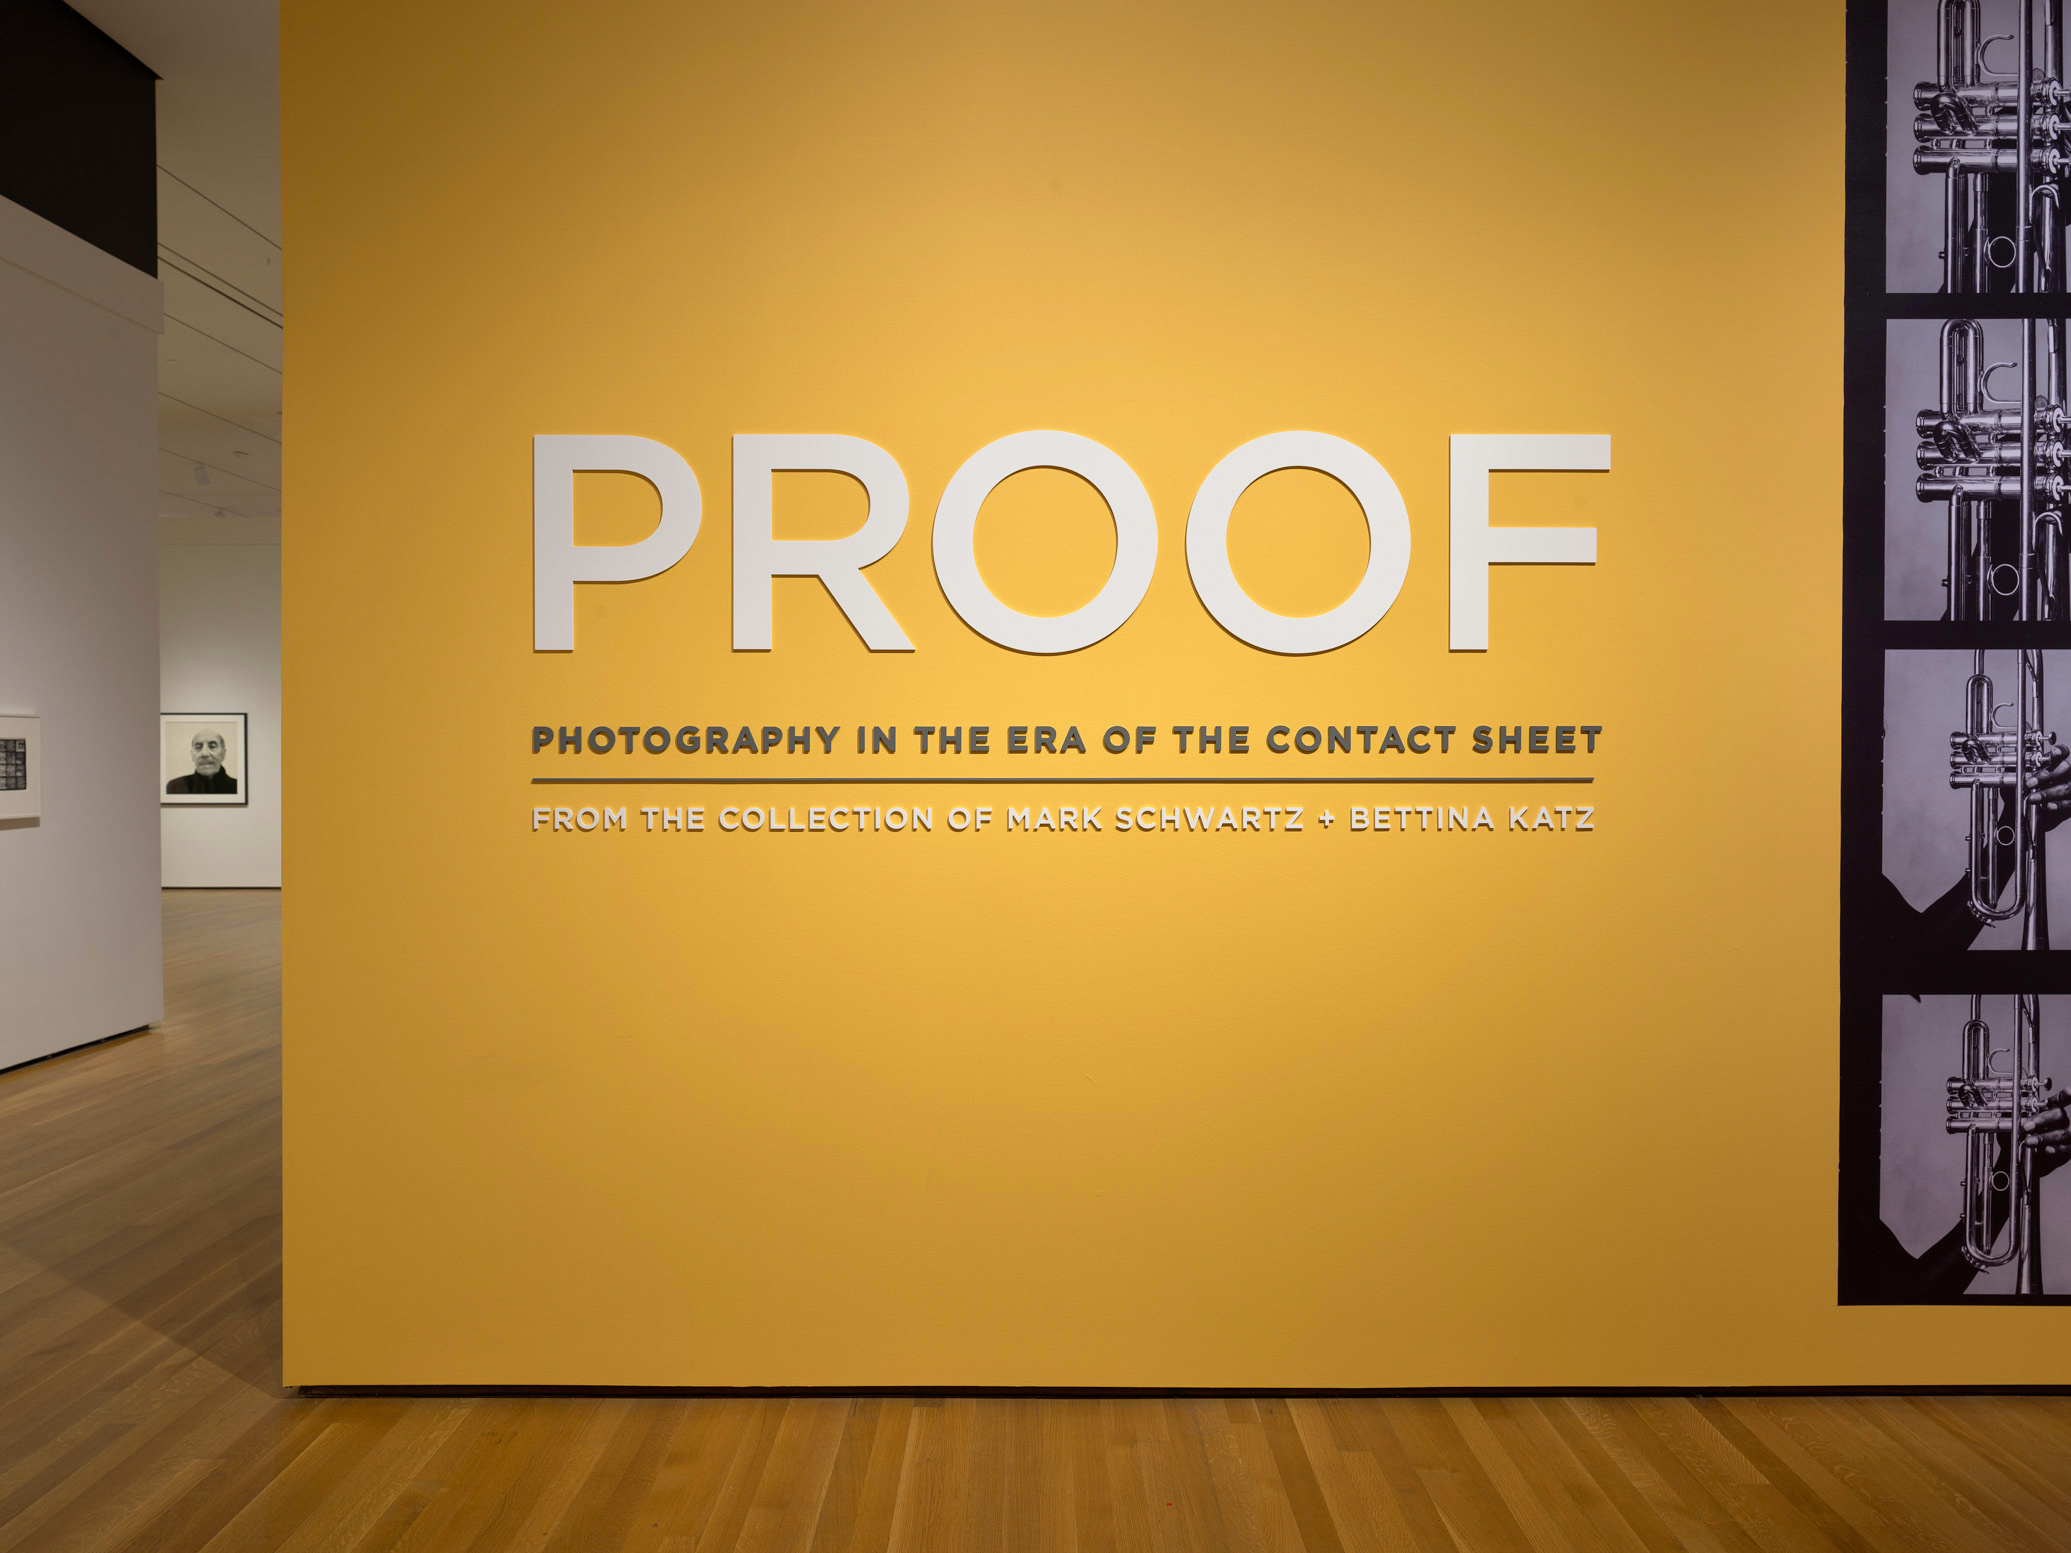 PROOF: Photography in the Era of the Contact Sheet branding at the exhibition entrance at the Cleveland Museum of Art